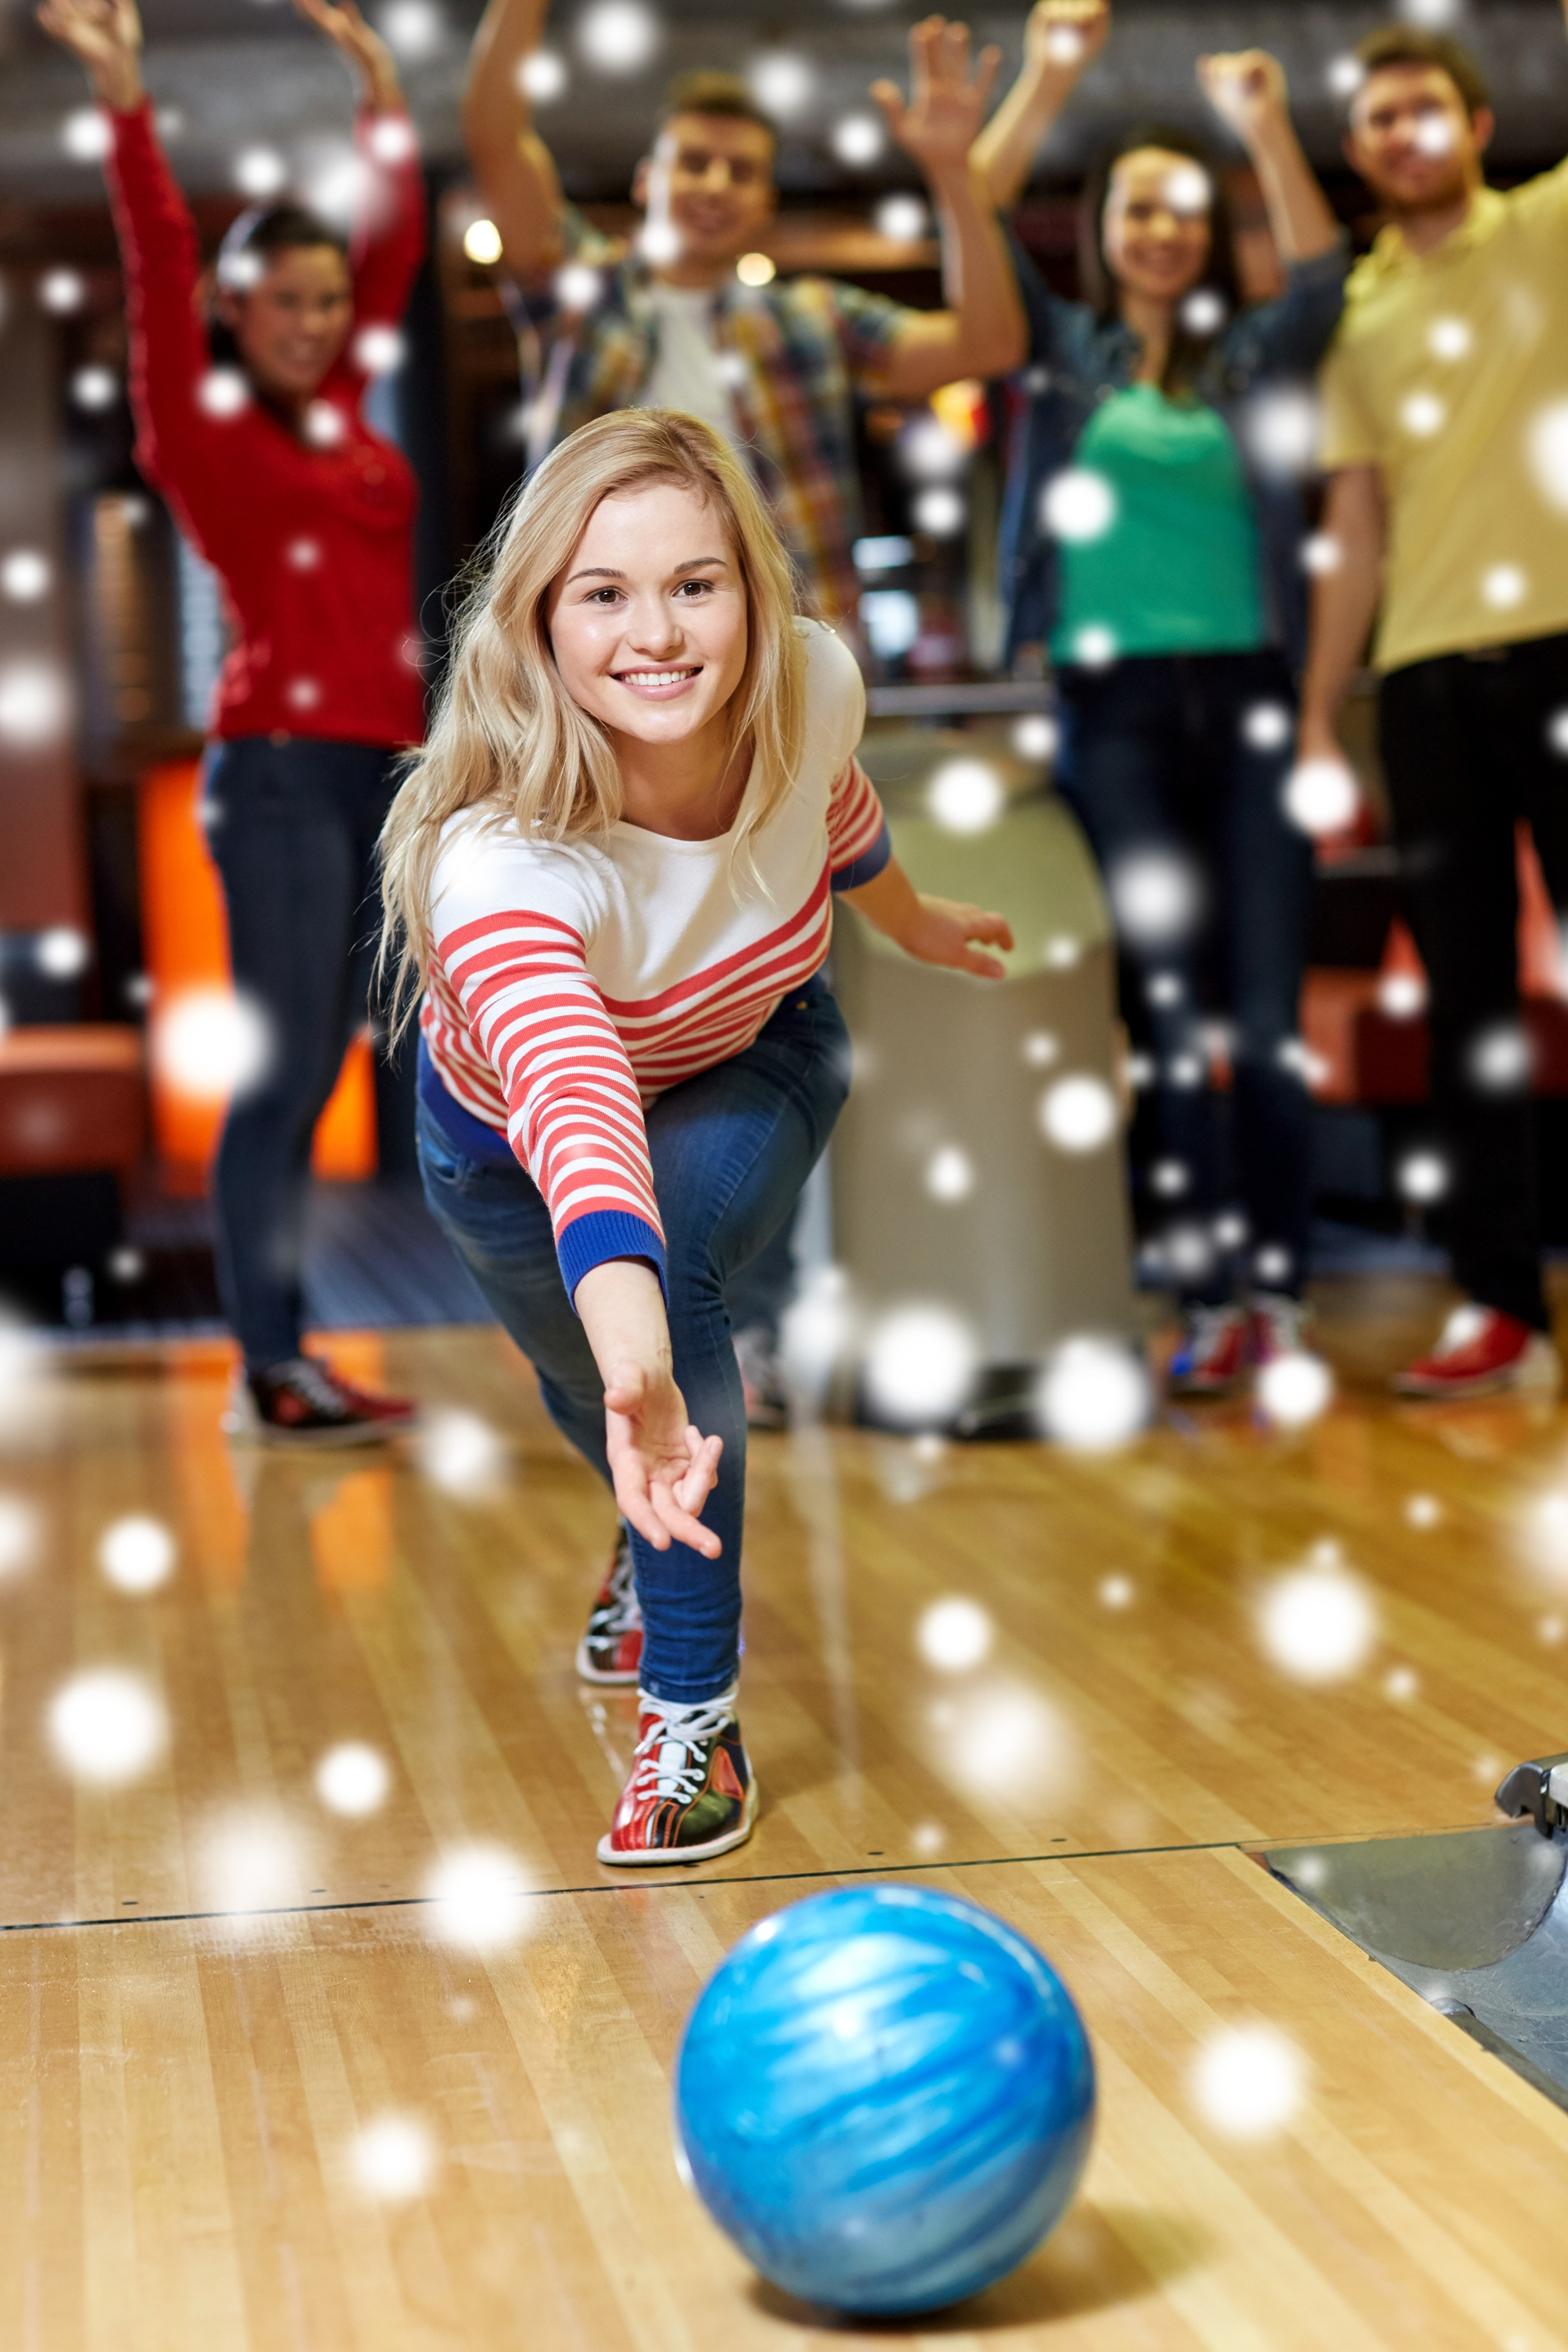 holiday parties at jb's on 41 | holiday bowling parties | bowling holiday parties | corporate holiday party ideas | jb's on 41 | milwaukee, wi